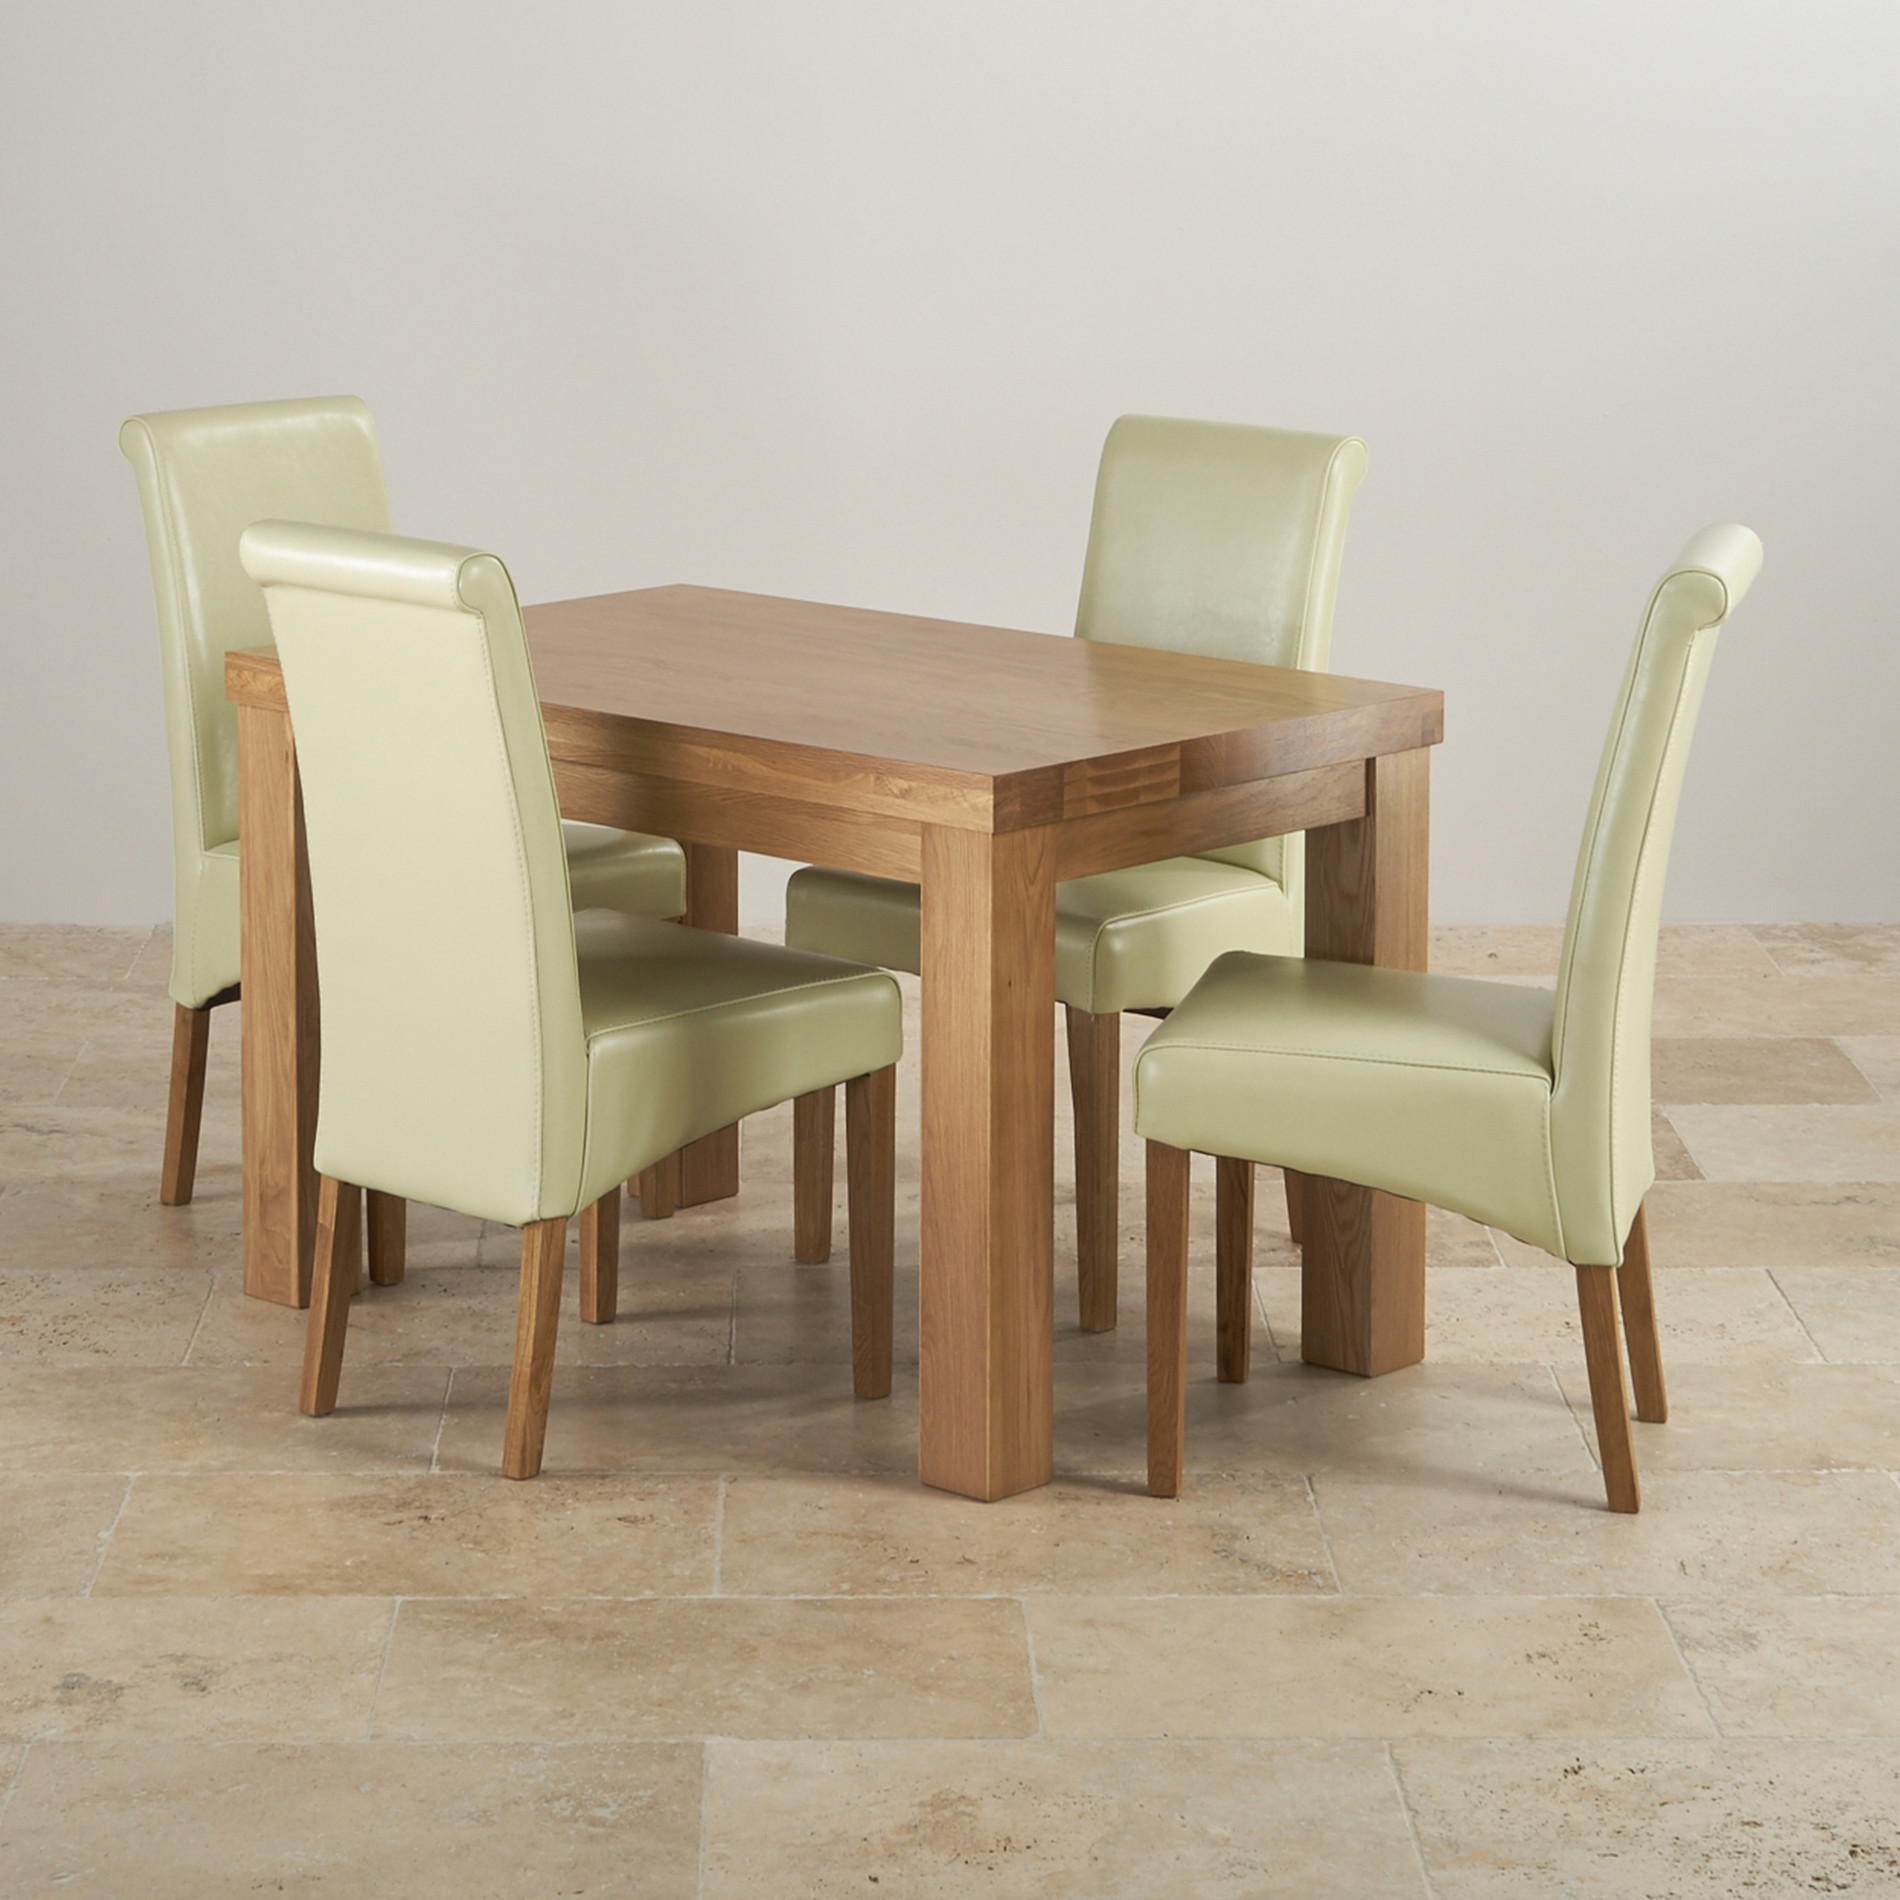 dining sets cream leather chairs. dining sets cream leather chairs c